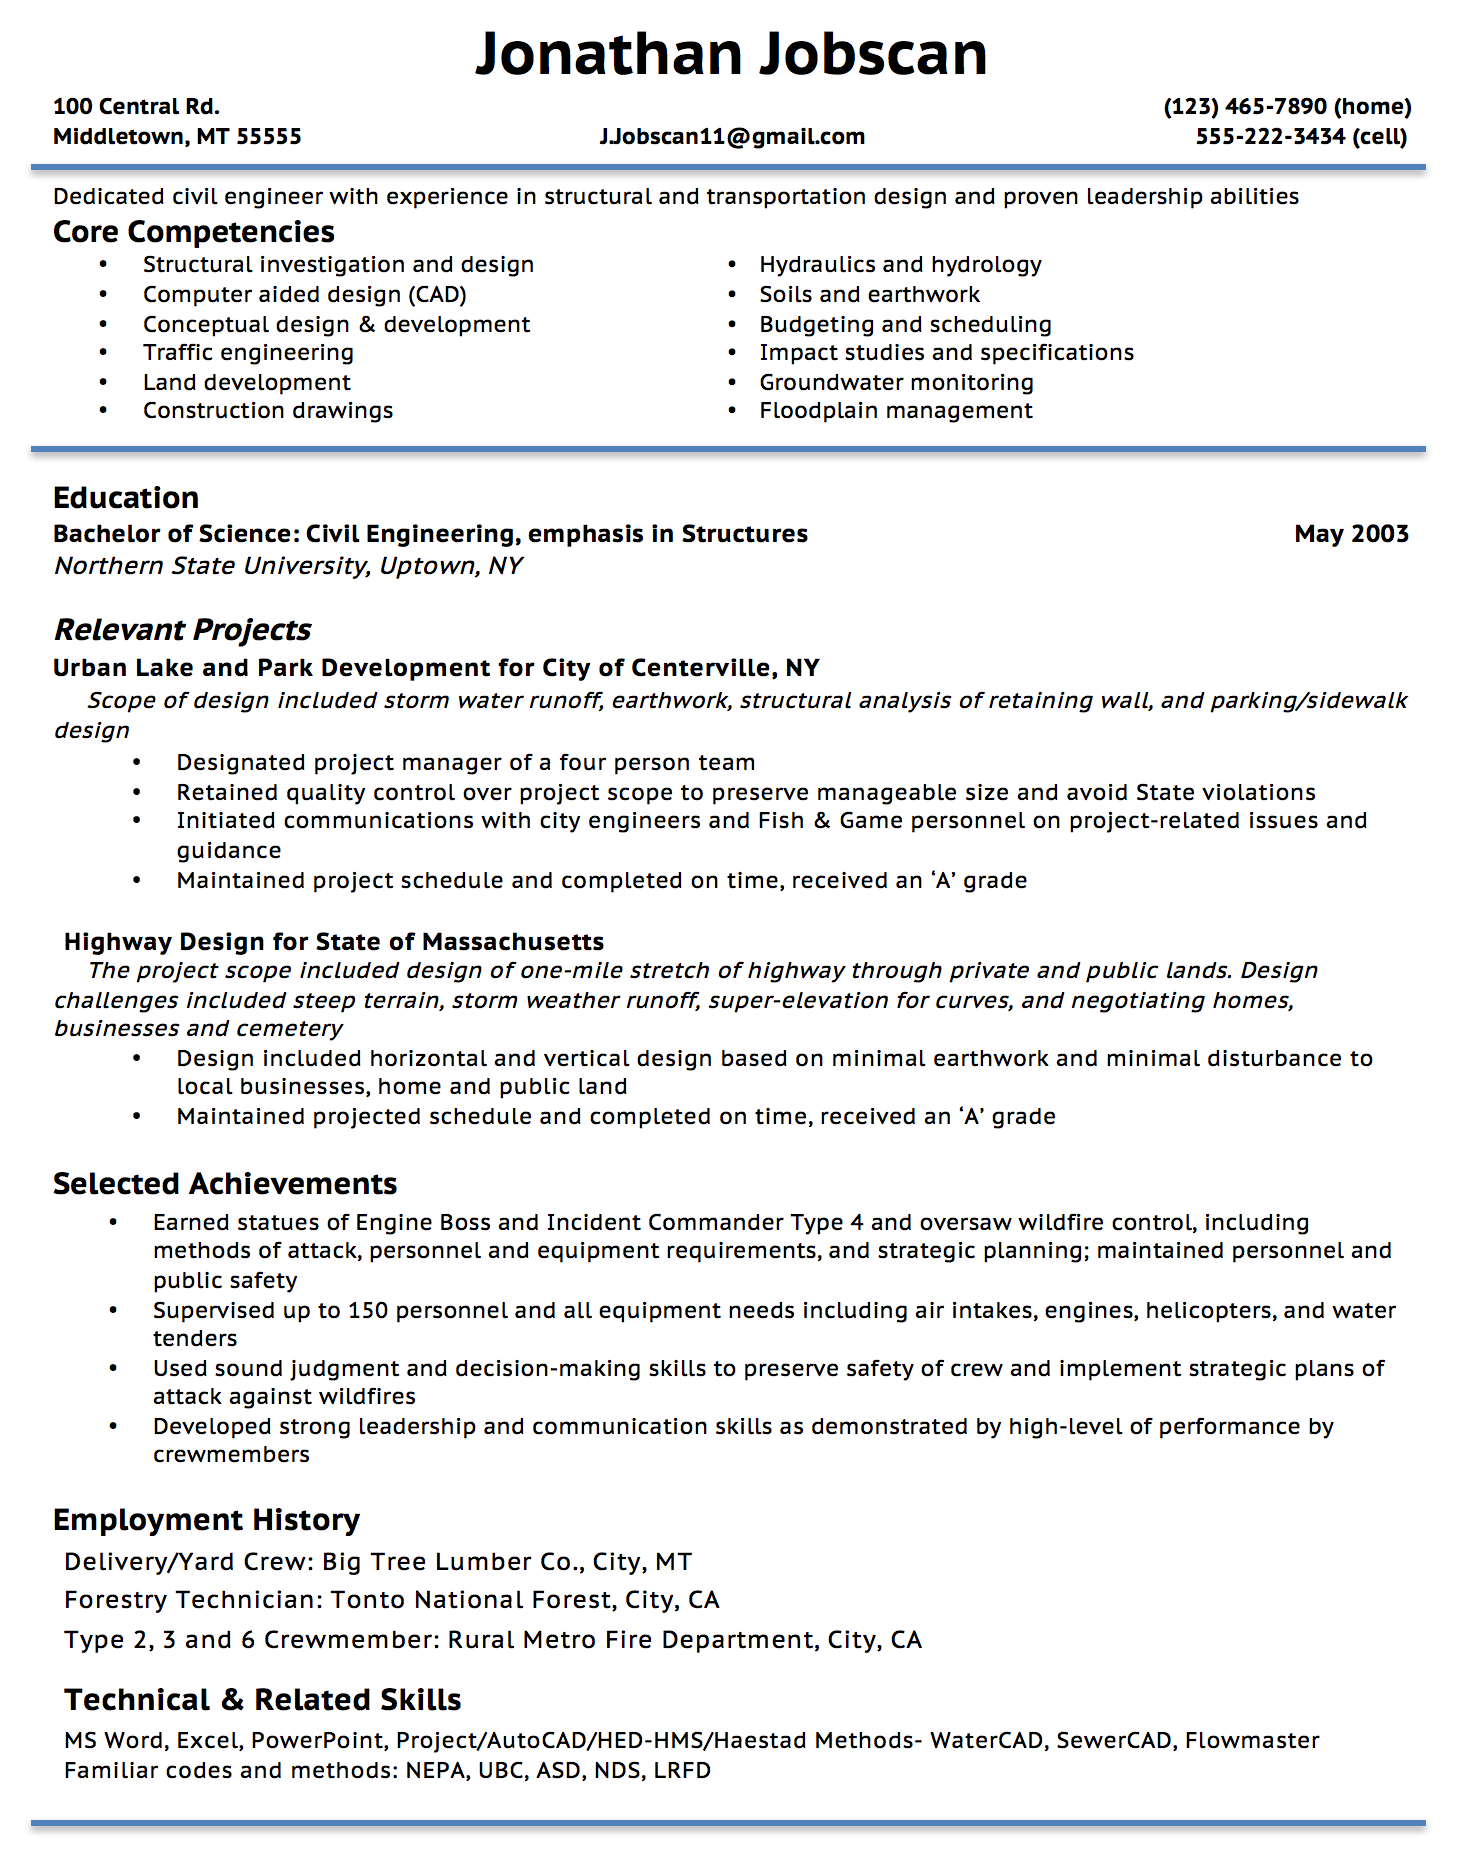 Opposenewapstandardsus  Prepossessing Resume Writing Guide  Jobscan With Magnificent Example Of A Functional Resume Format With Comely Linux Admin Resume Also Program Manager Resumes In Addition Resume For Promotion Within Same Company And Spa Receptionist Resume As Well As Nurse Educator Resume Additionally Data Management Resume From Jobscanco With Opposenewapstandardsus  Magnificent Resume Writing Guide  Jobscan With Comely Example Of A Functional Resume Format And Prepossessing Linux Admin Resume Also Program Manager Resumes In Addition Resume For Promotion Within Same Company From Jobscanco